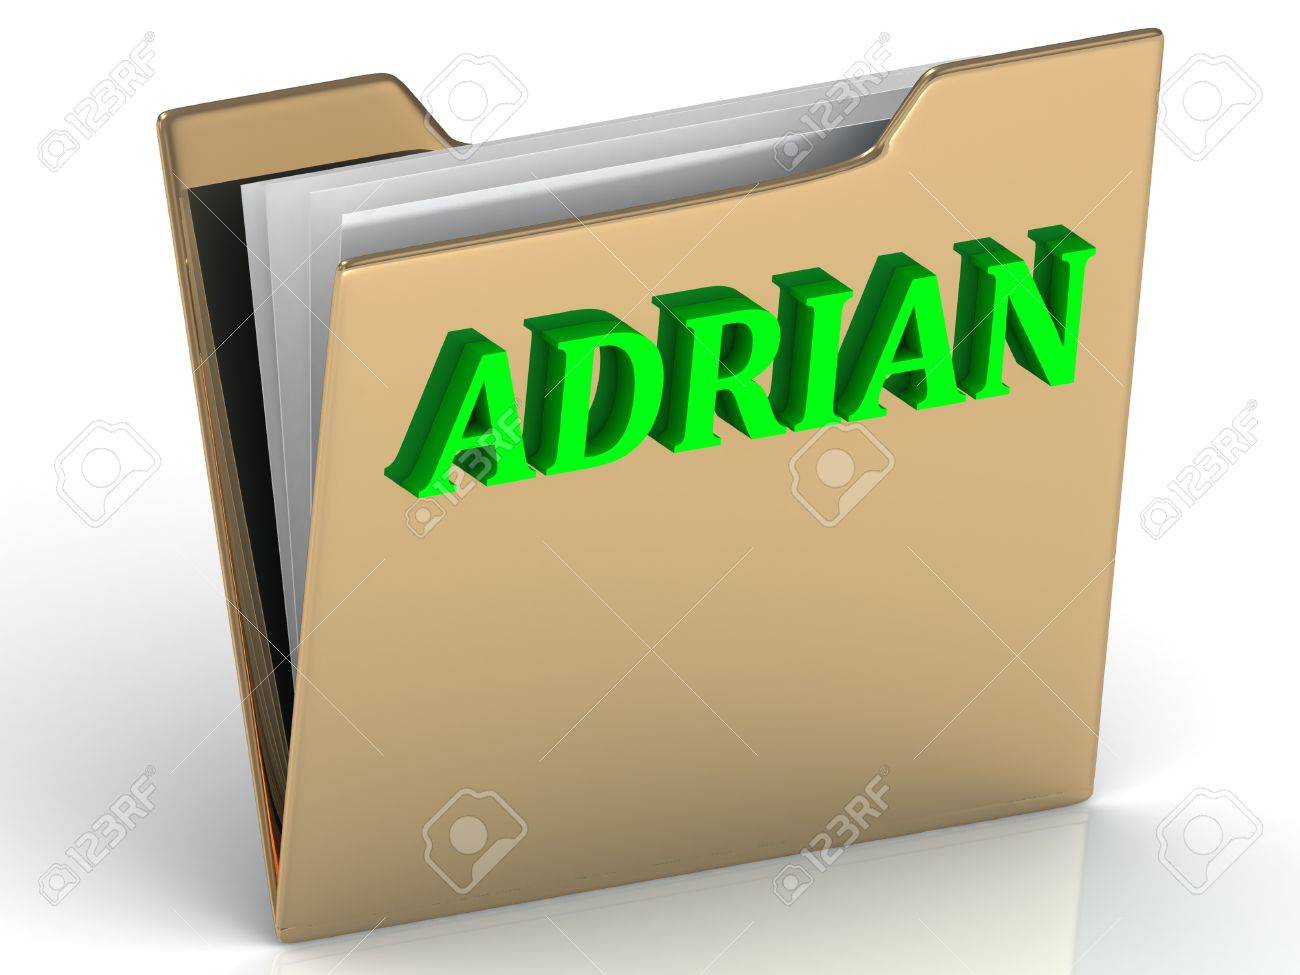 ADRIAN Bright Green Letters On Gold Paperwork Folder A White Background Stock Photo